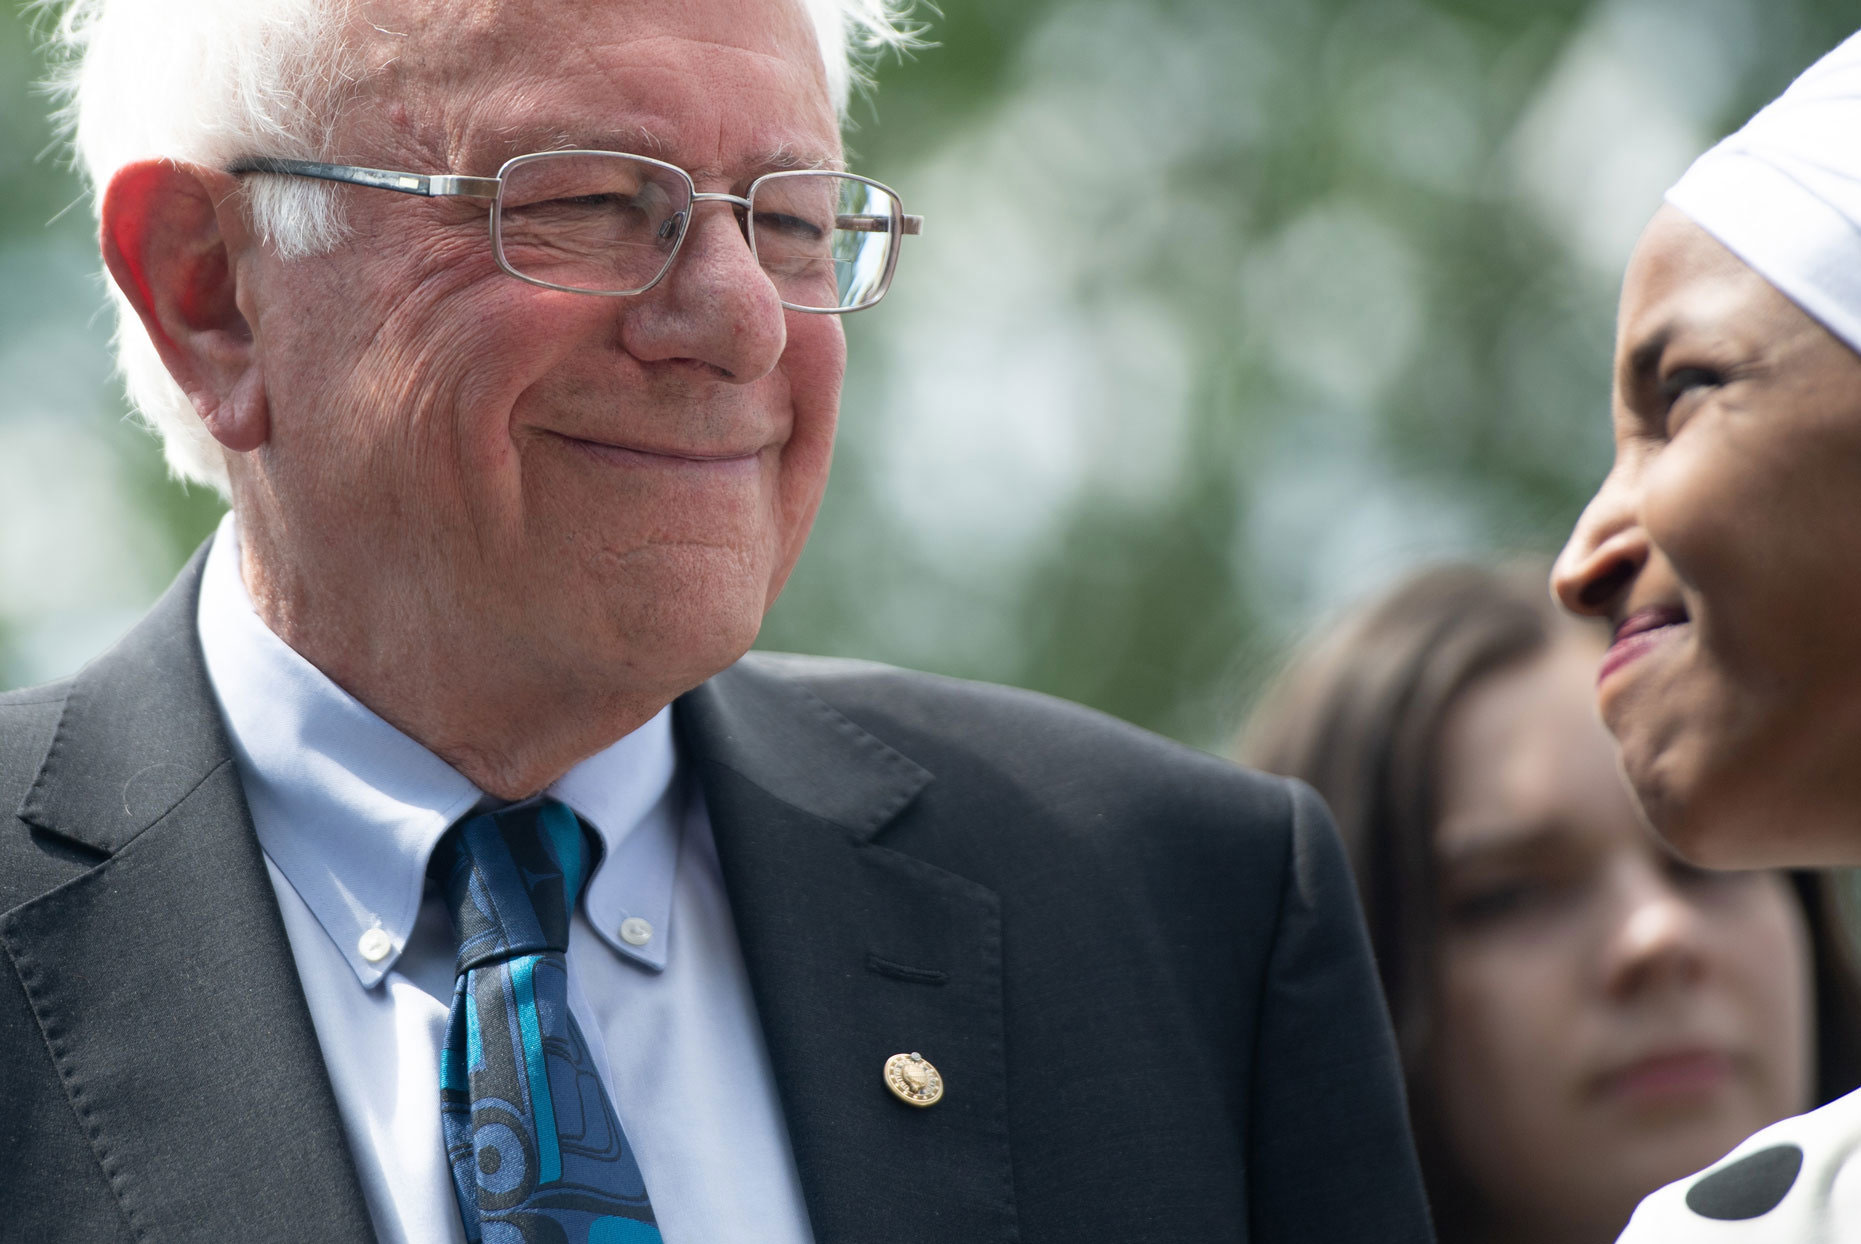 Bernie Sanders and Ilhan Omar Want to Provide 3 Meals a Day for All Children in the U.S.